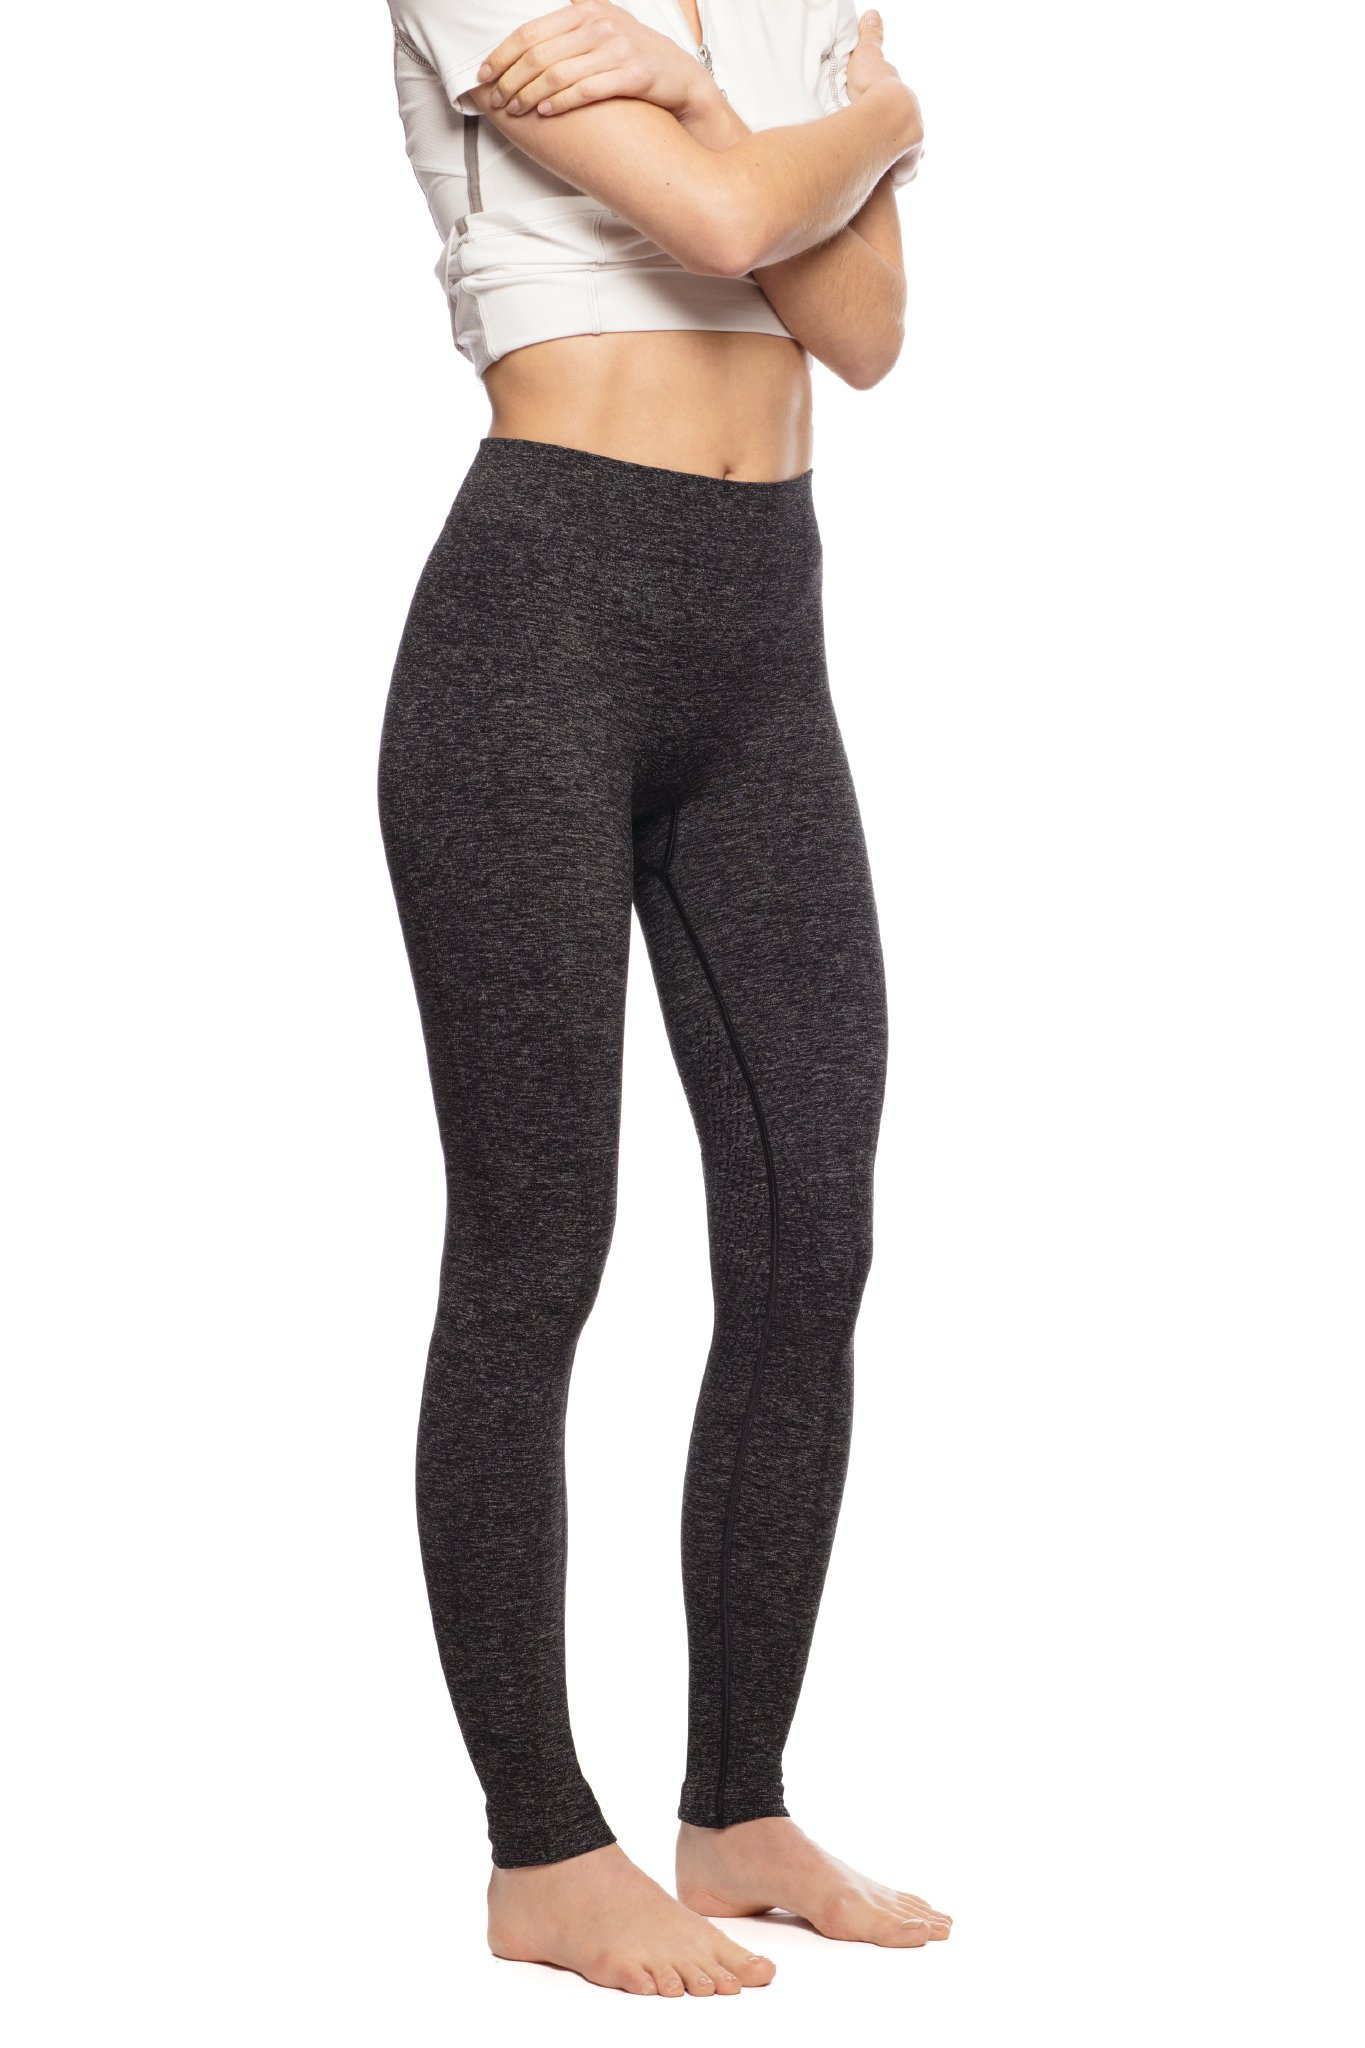 Goode Rider Bodysculpting Seamless Tights Knee Patch Charcoal Heather XS